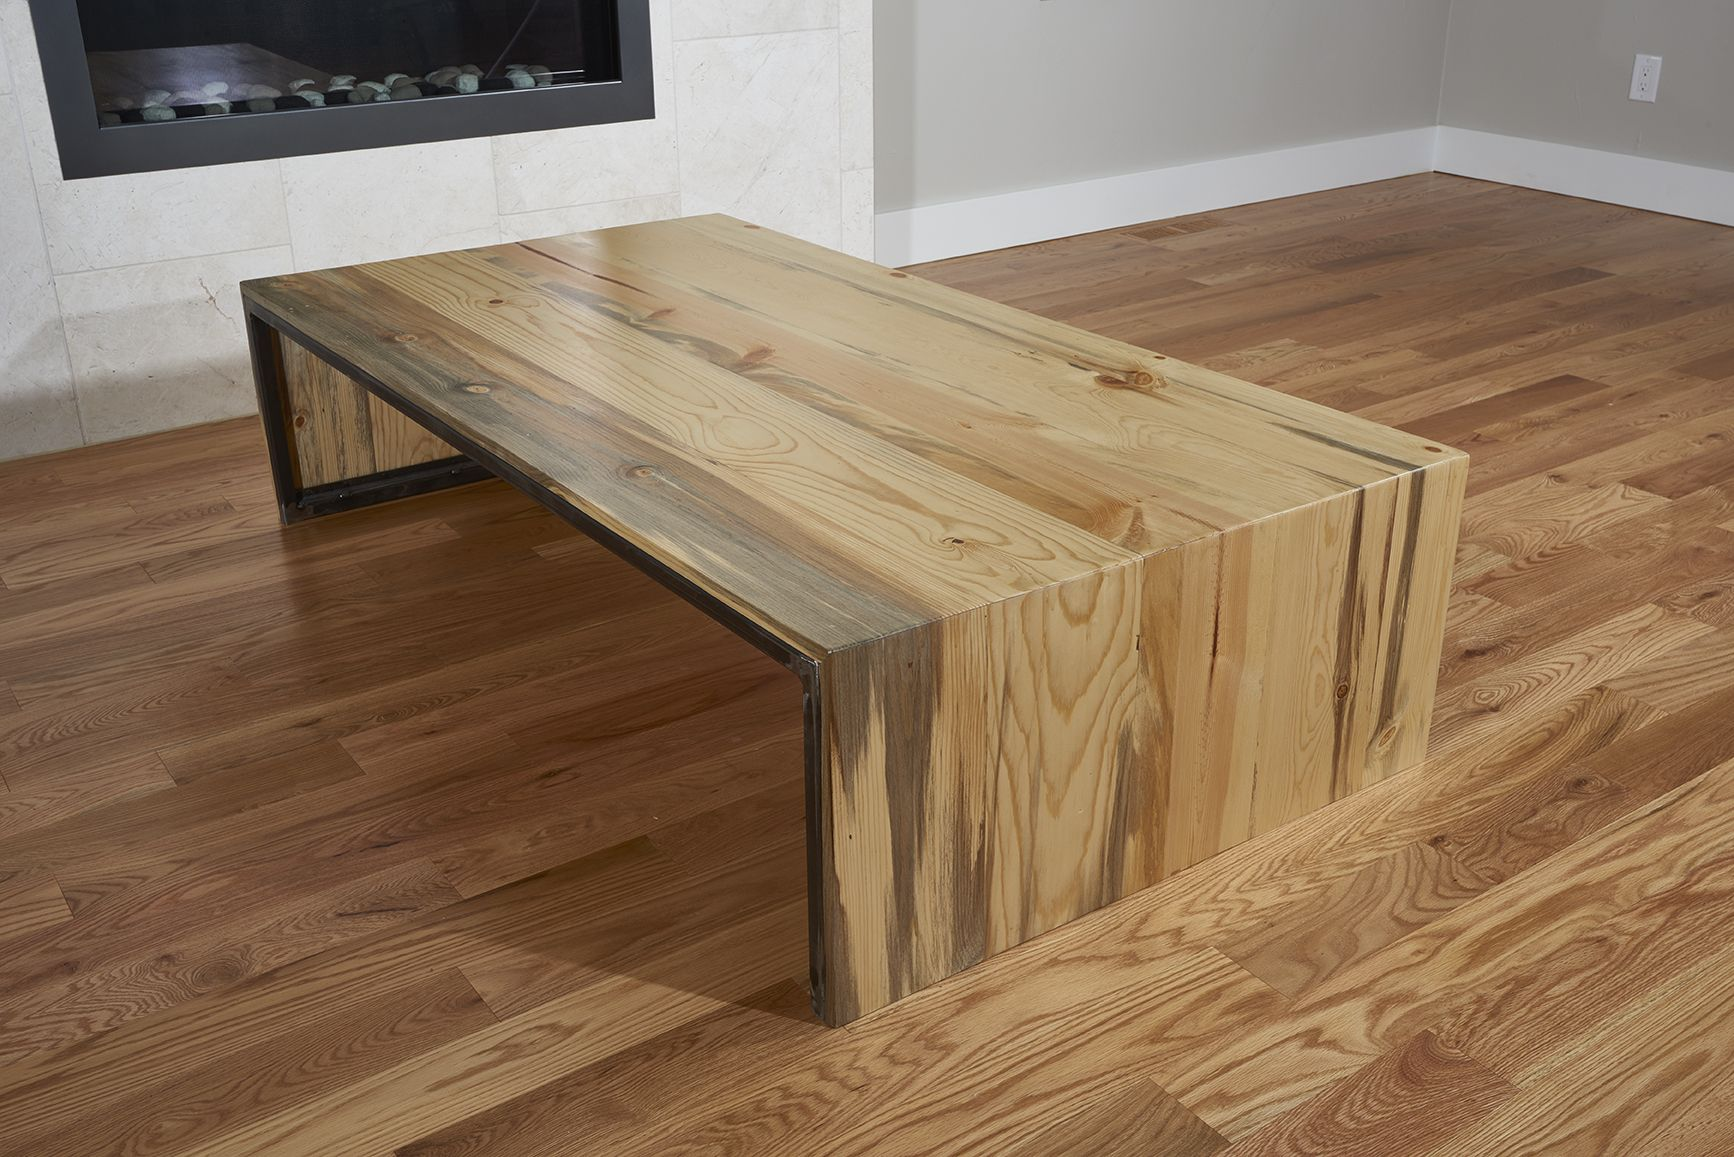 Hand Made Waterfall Beetle Kill Table By Purpose And Pine